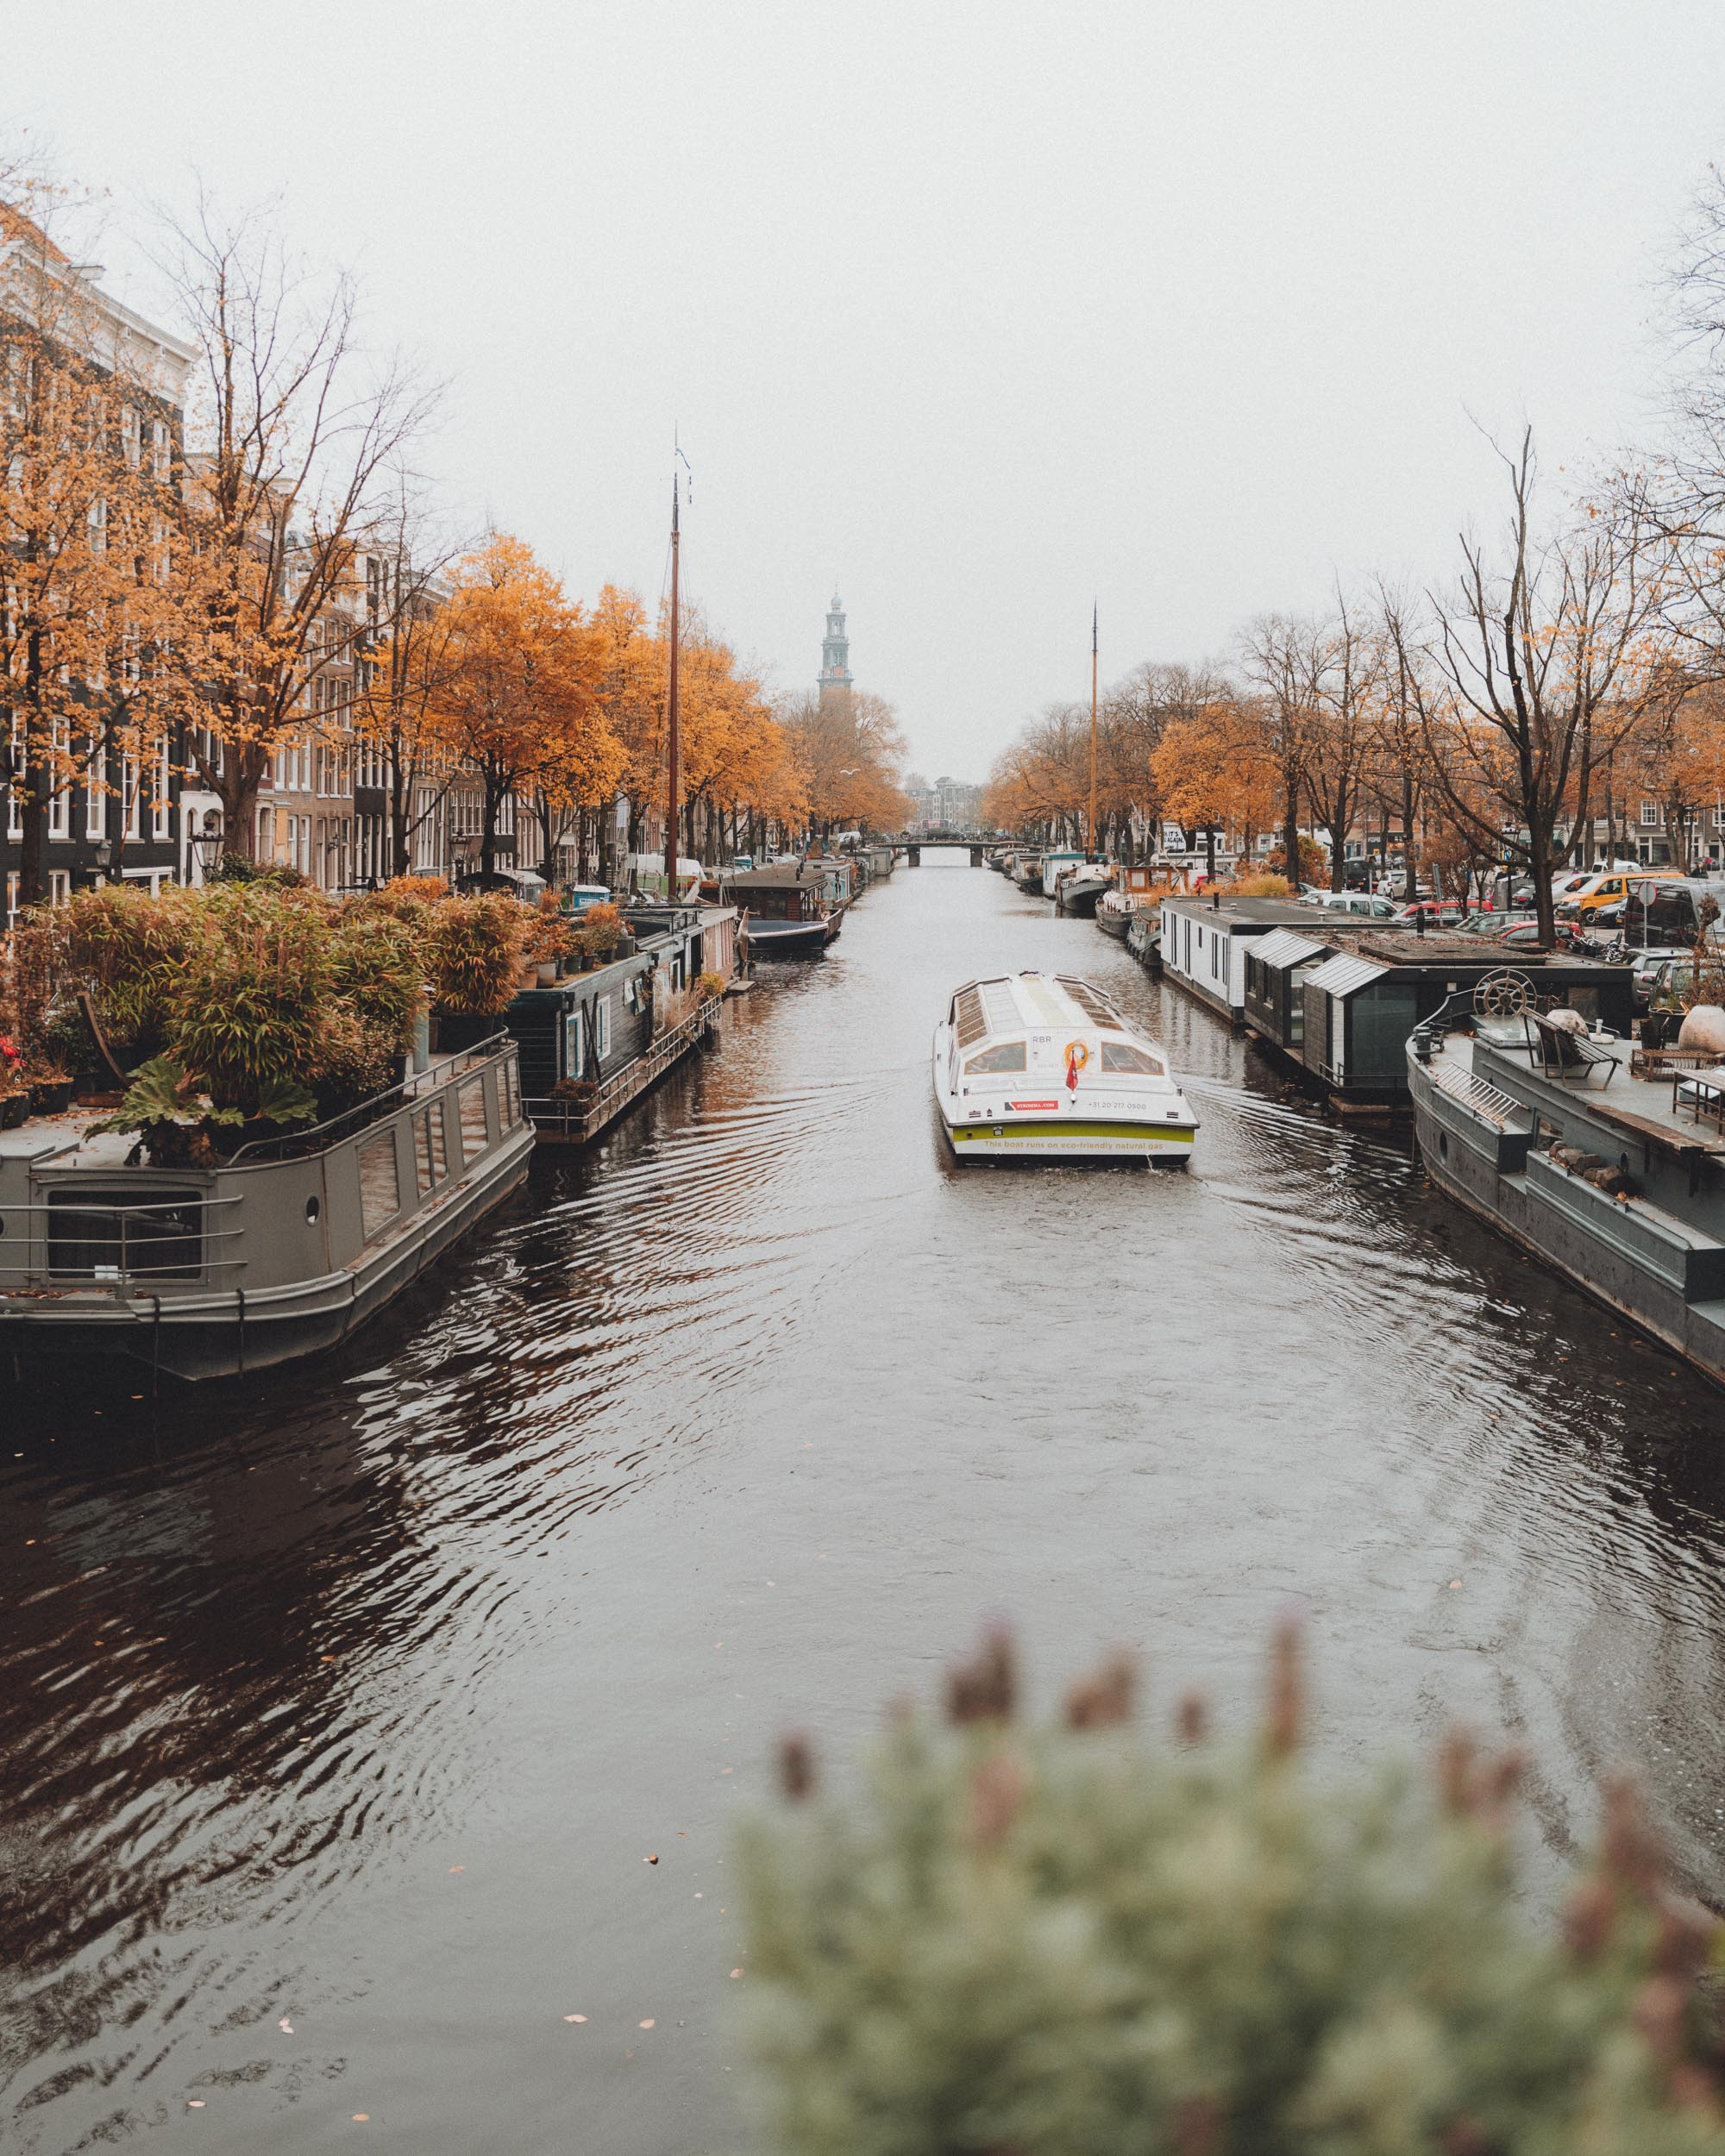 Fall in Amsterdam on the canals